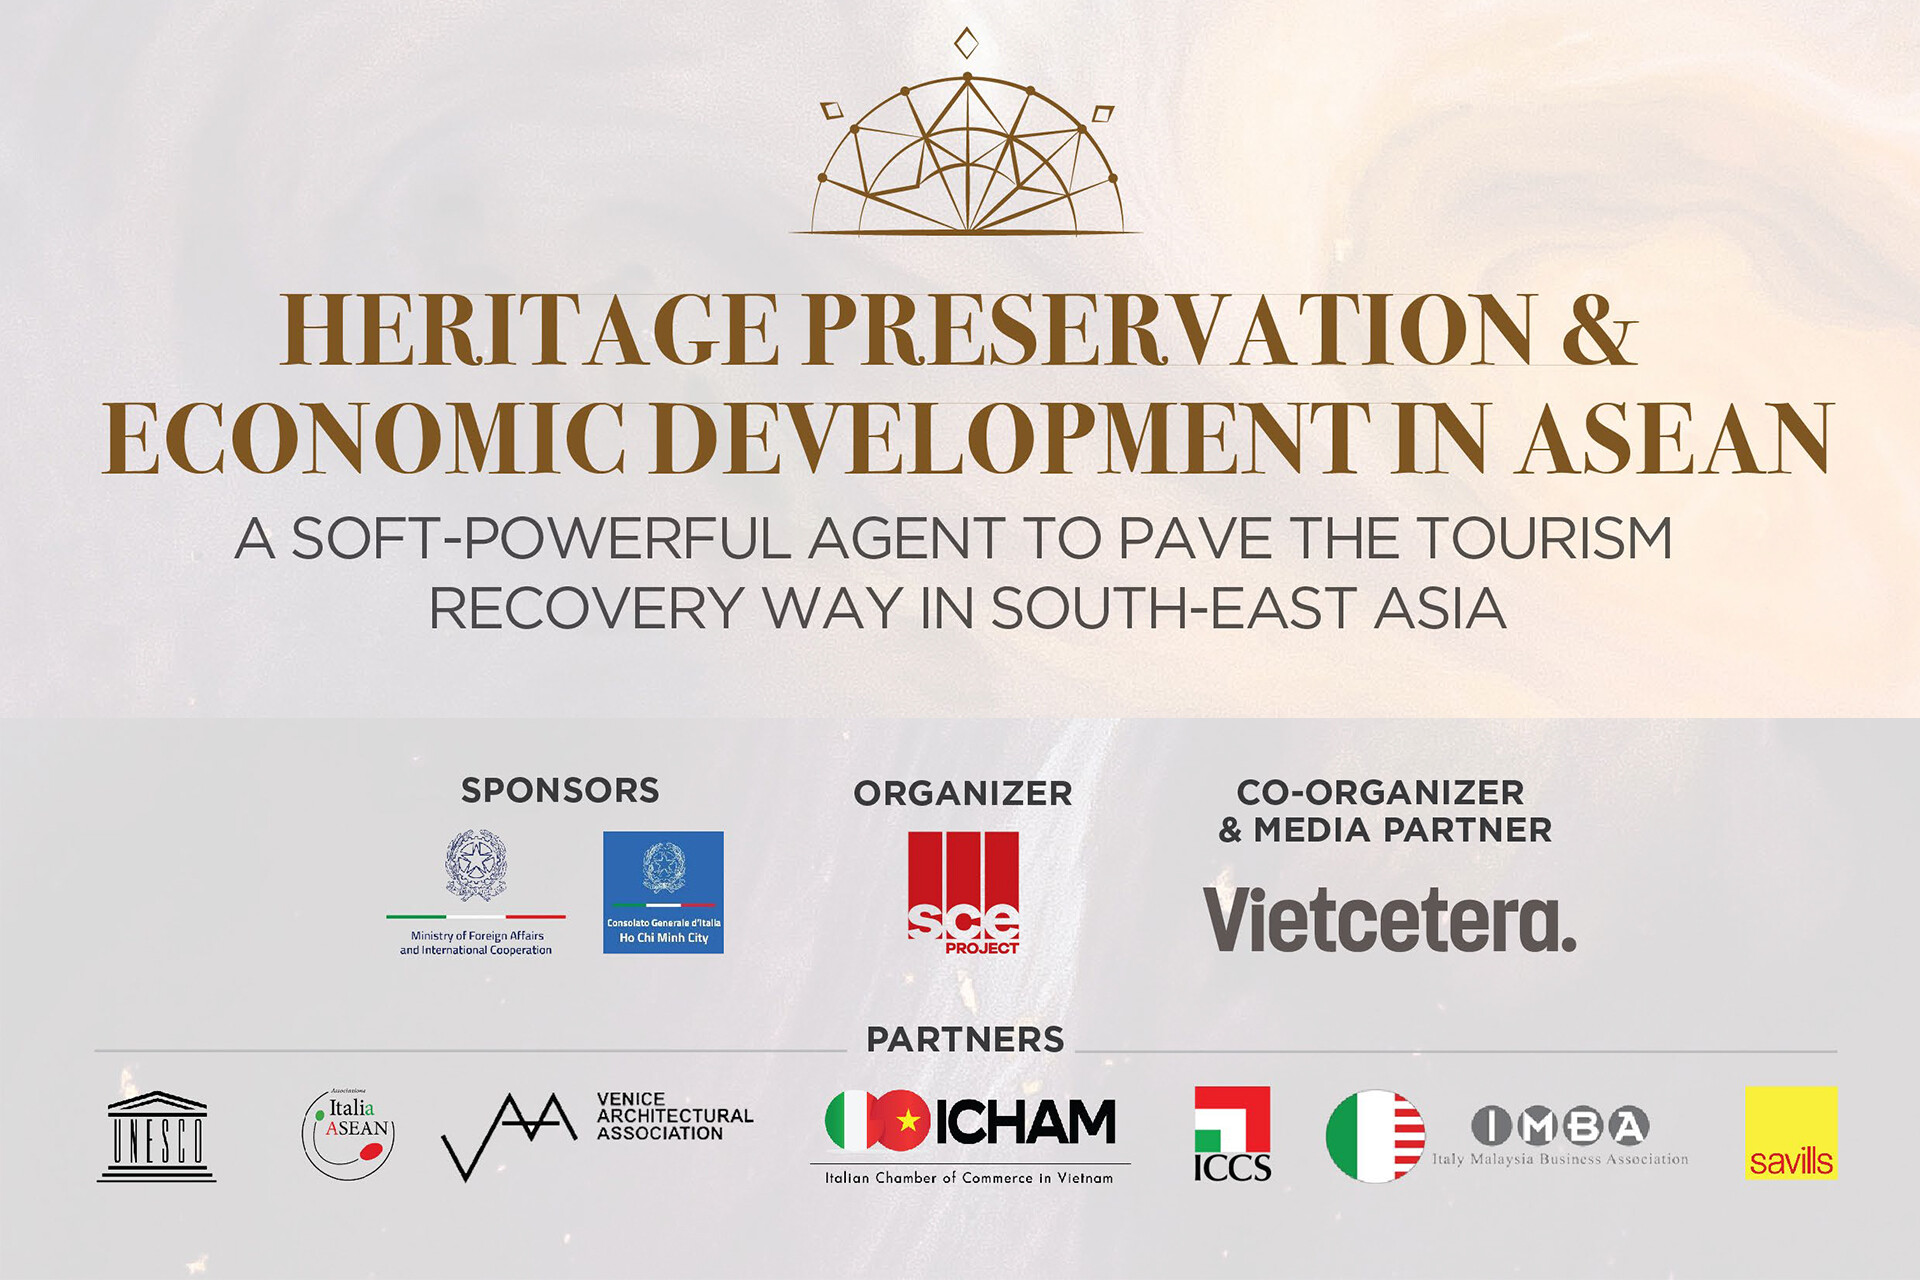 Heritage preservation and economic development in ASEAN Event by SCE PROJECT asia